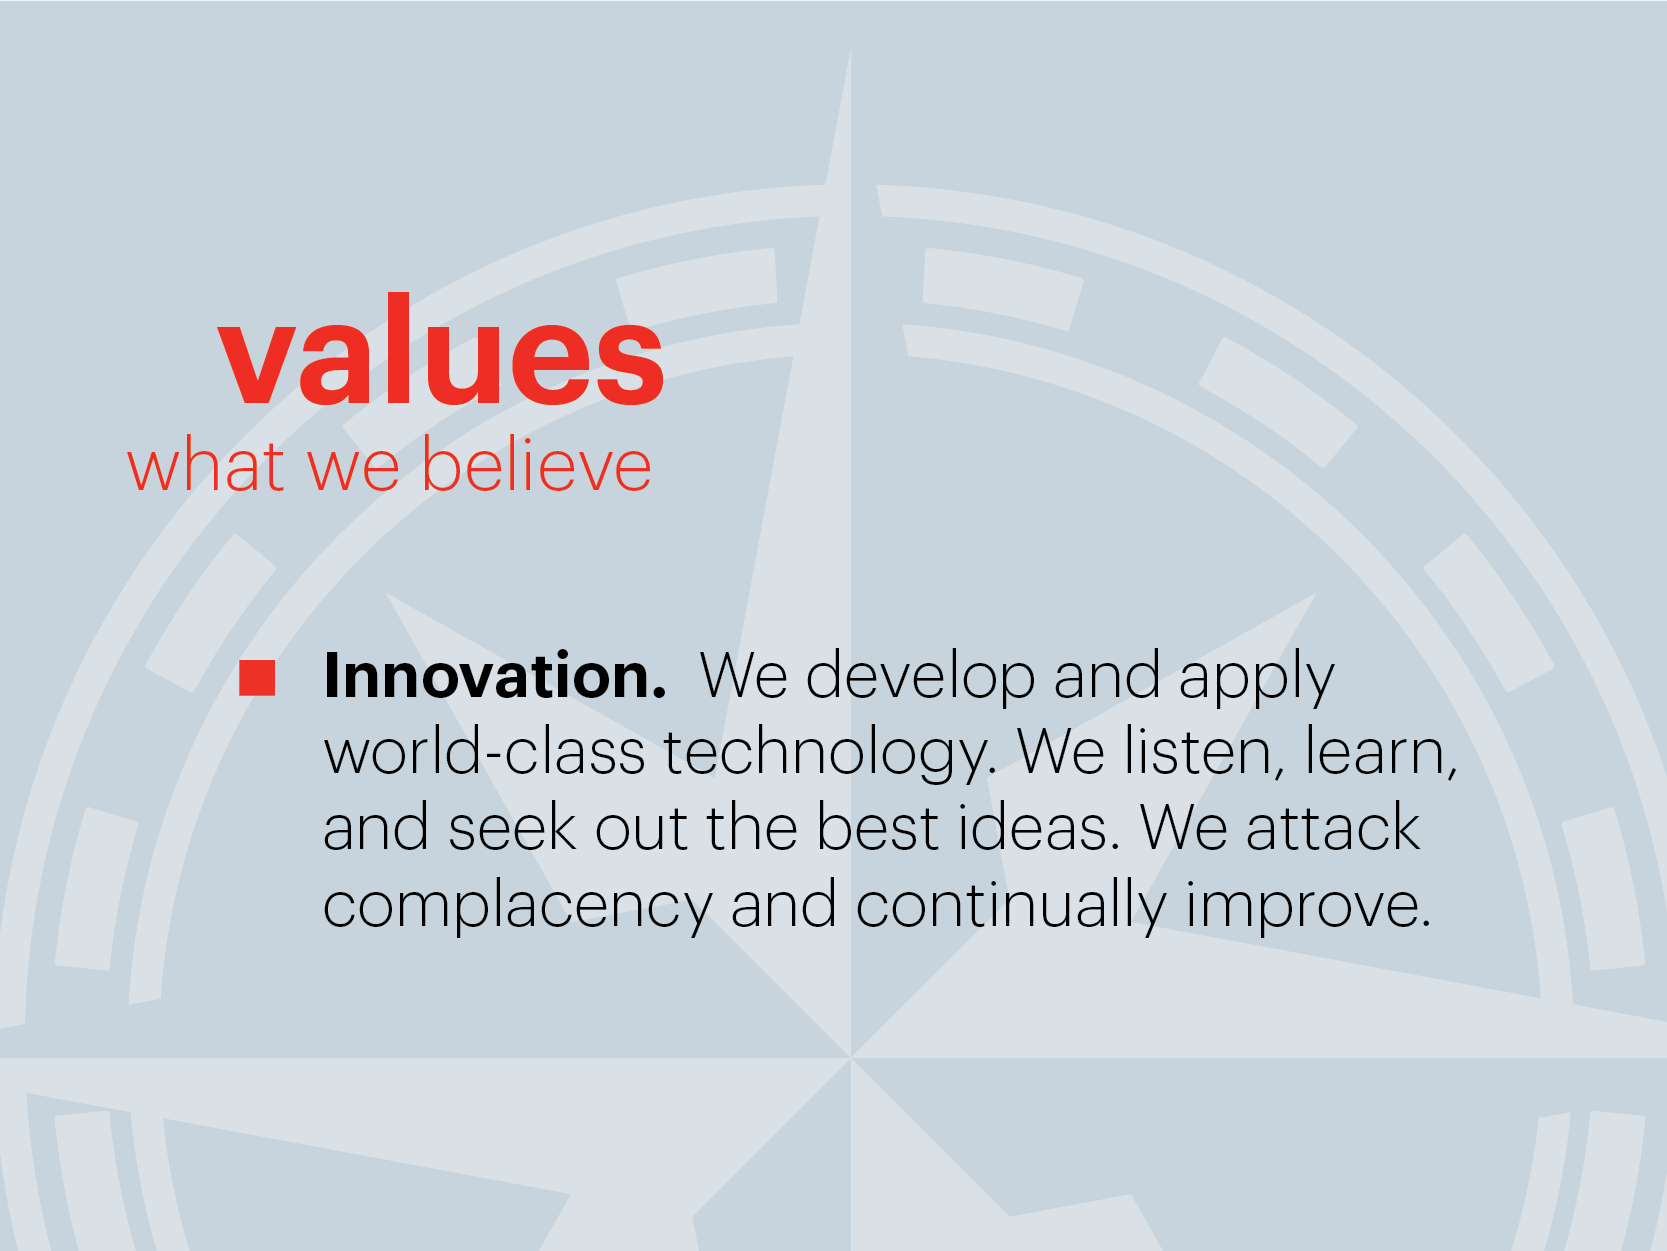 Bechtel Innovation Blog.